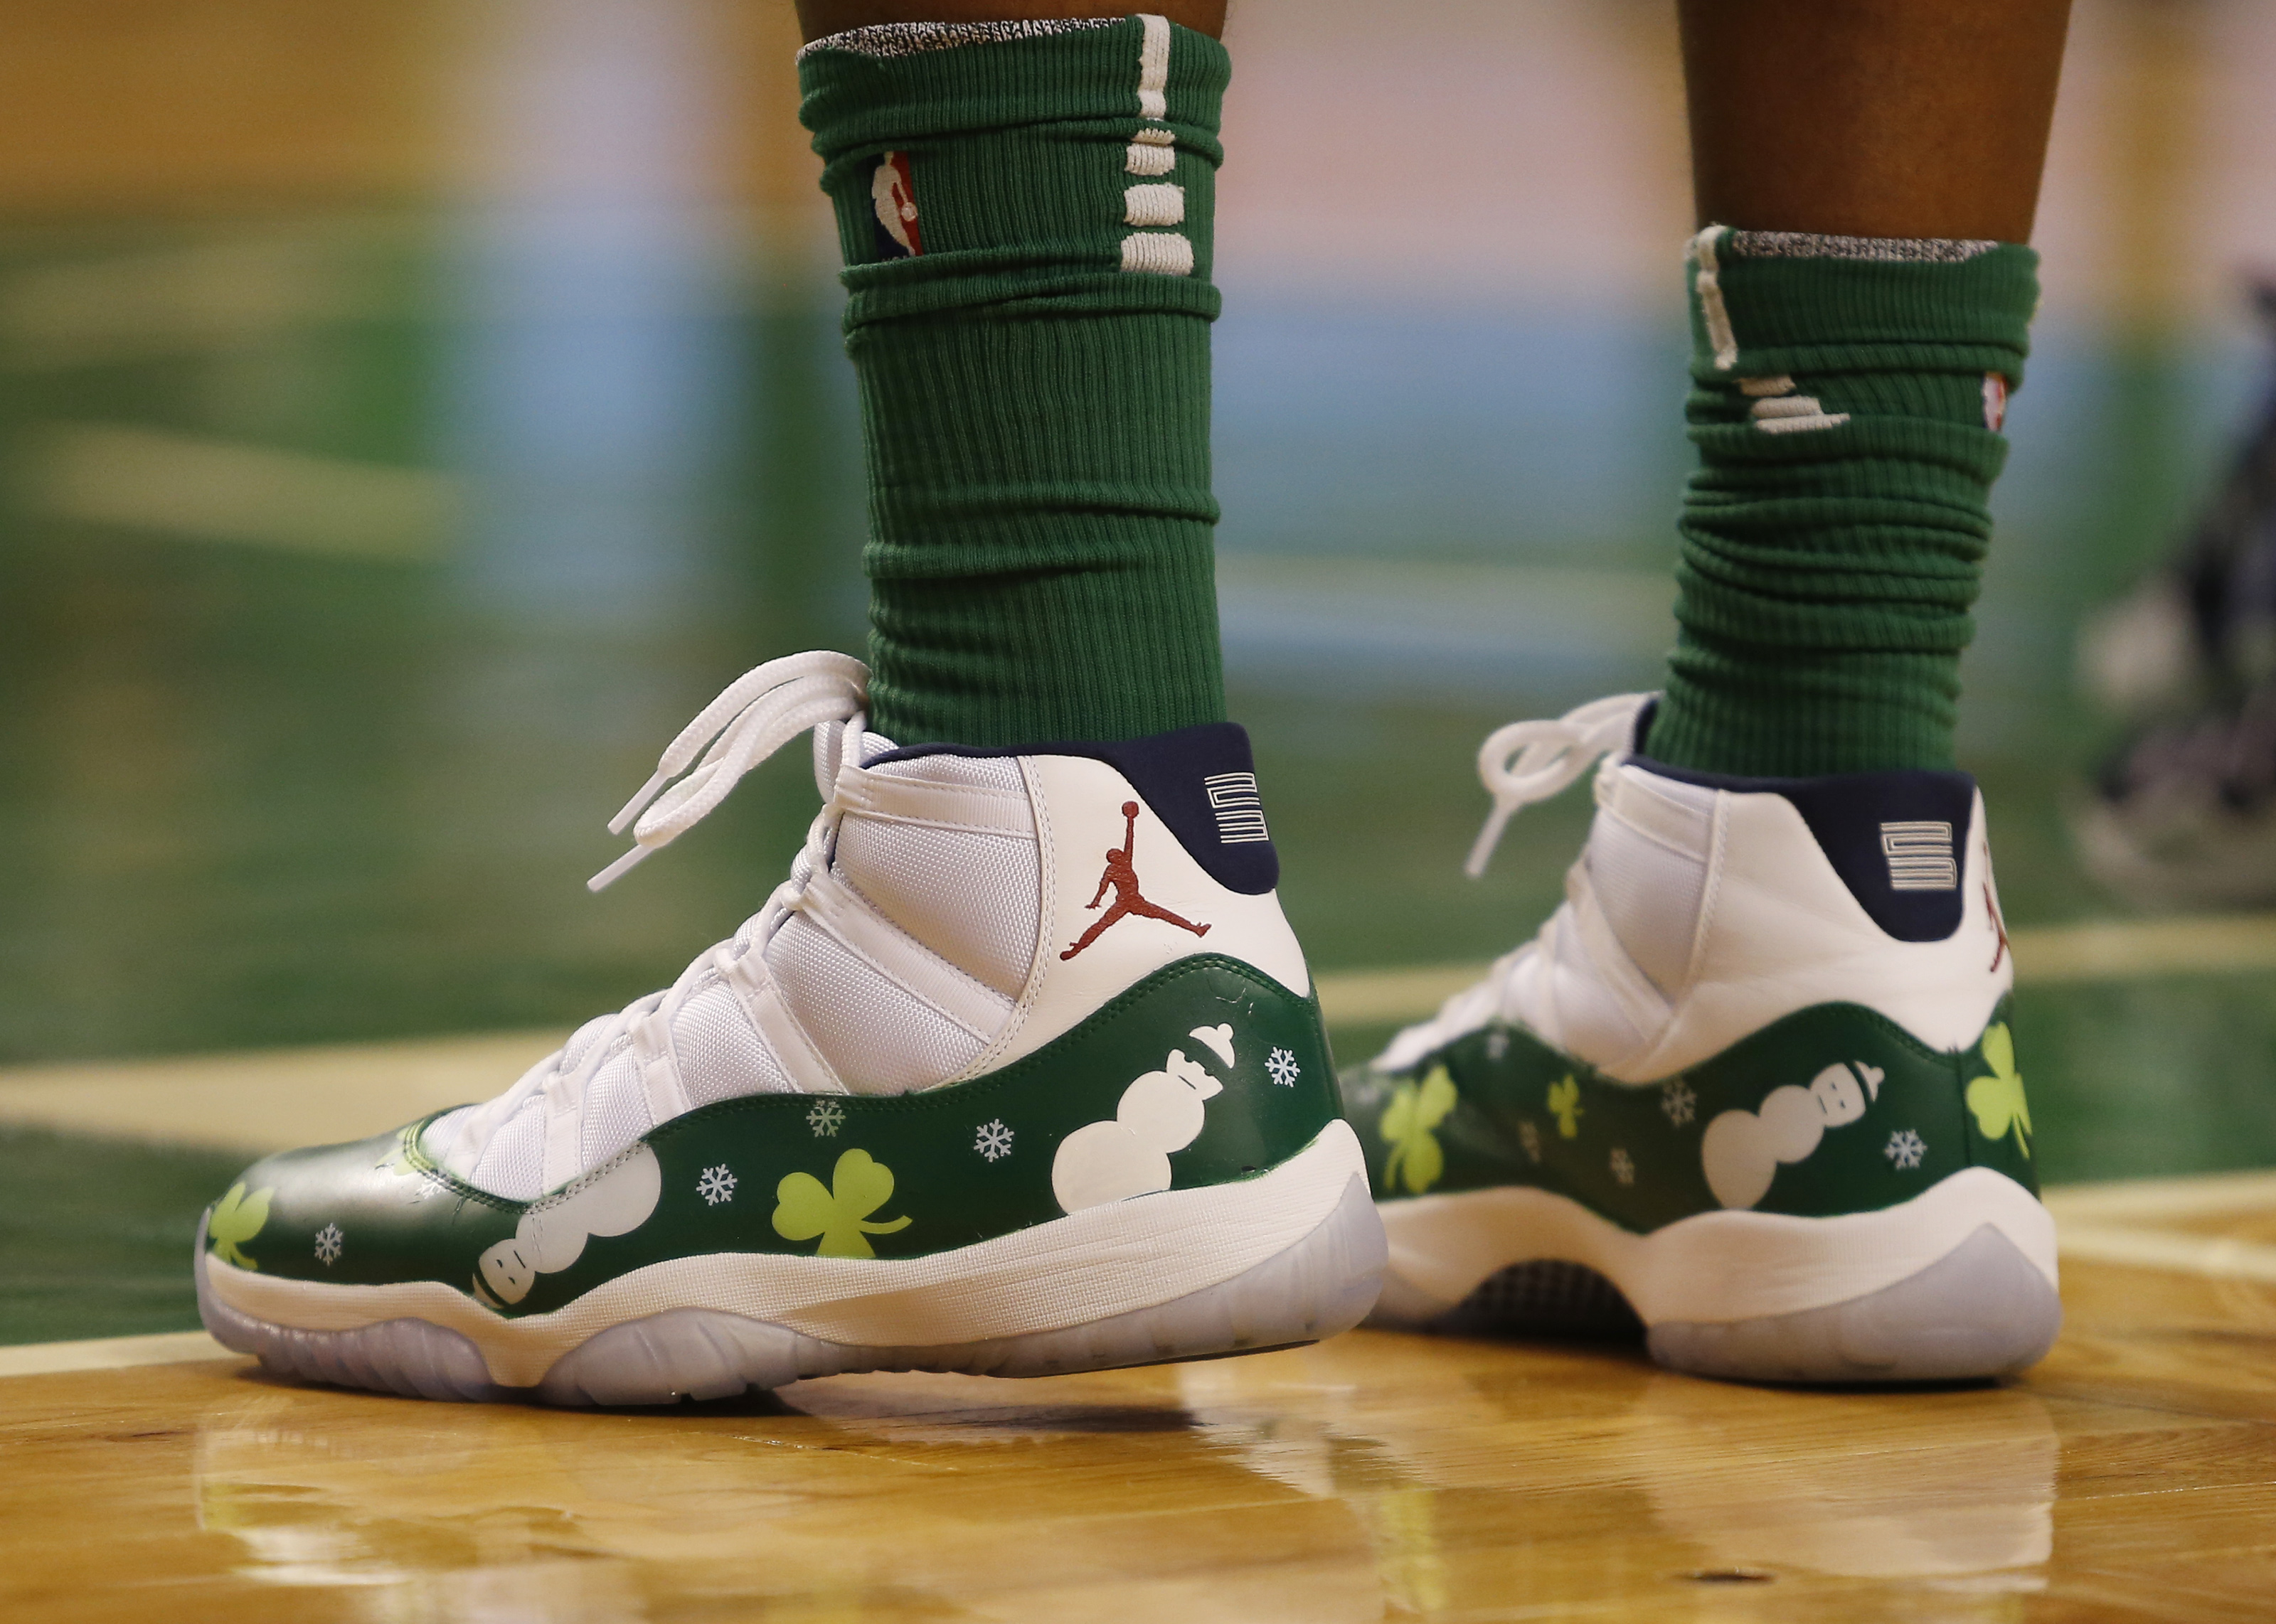 5dbd1b189e3 The top 50 sneakers worn on the past 20 NBA Christmas Days